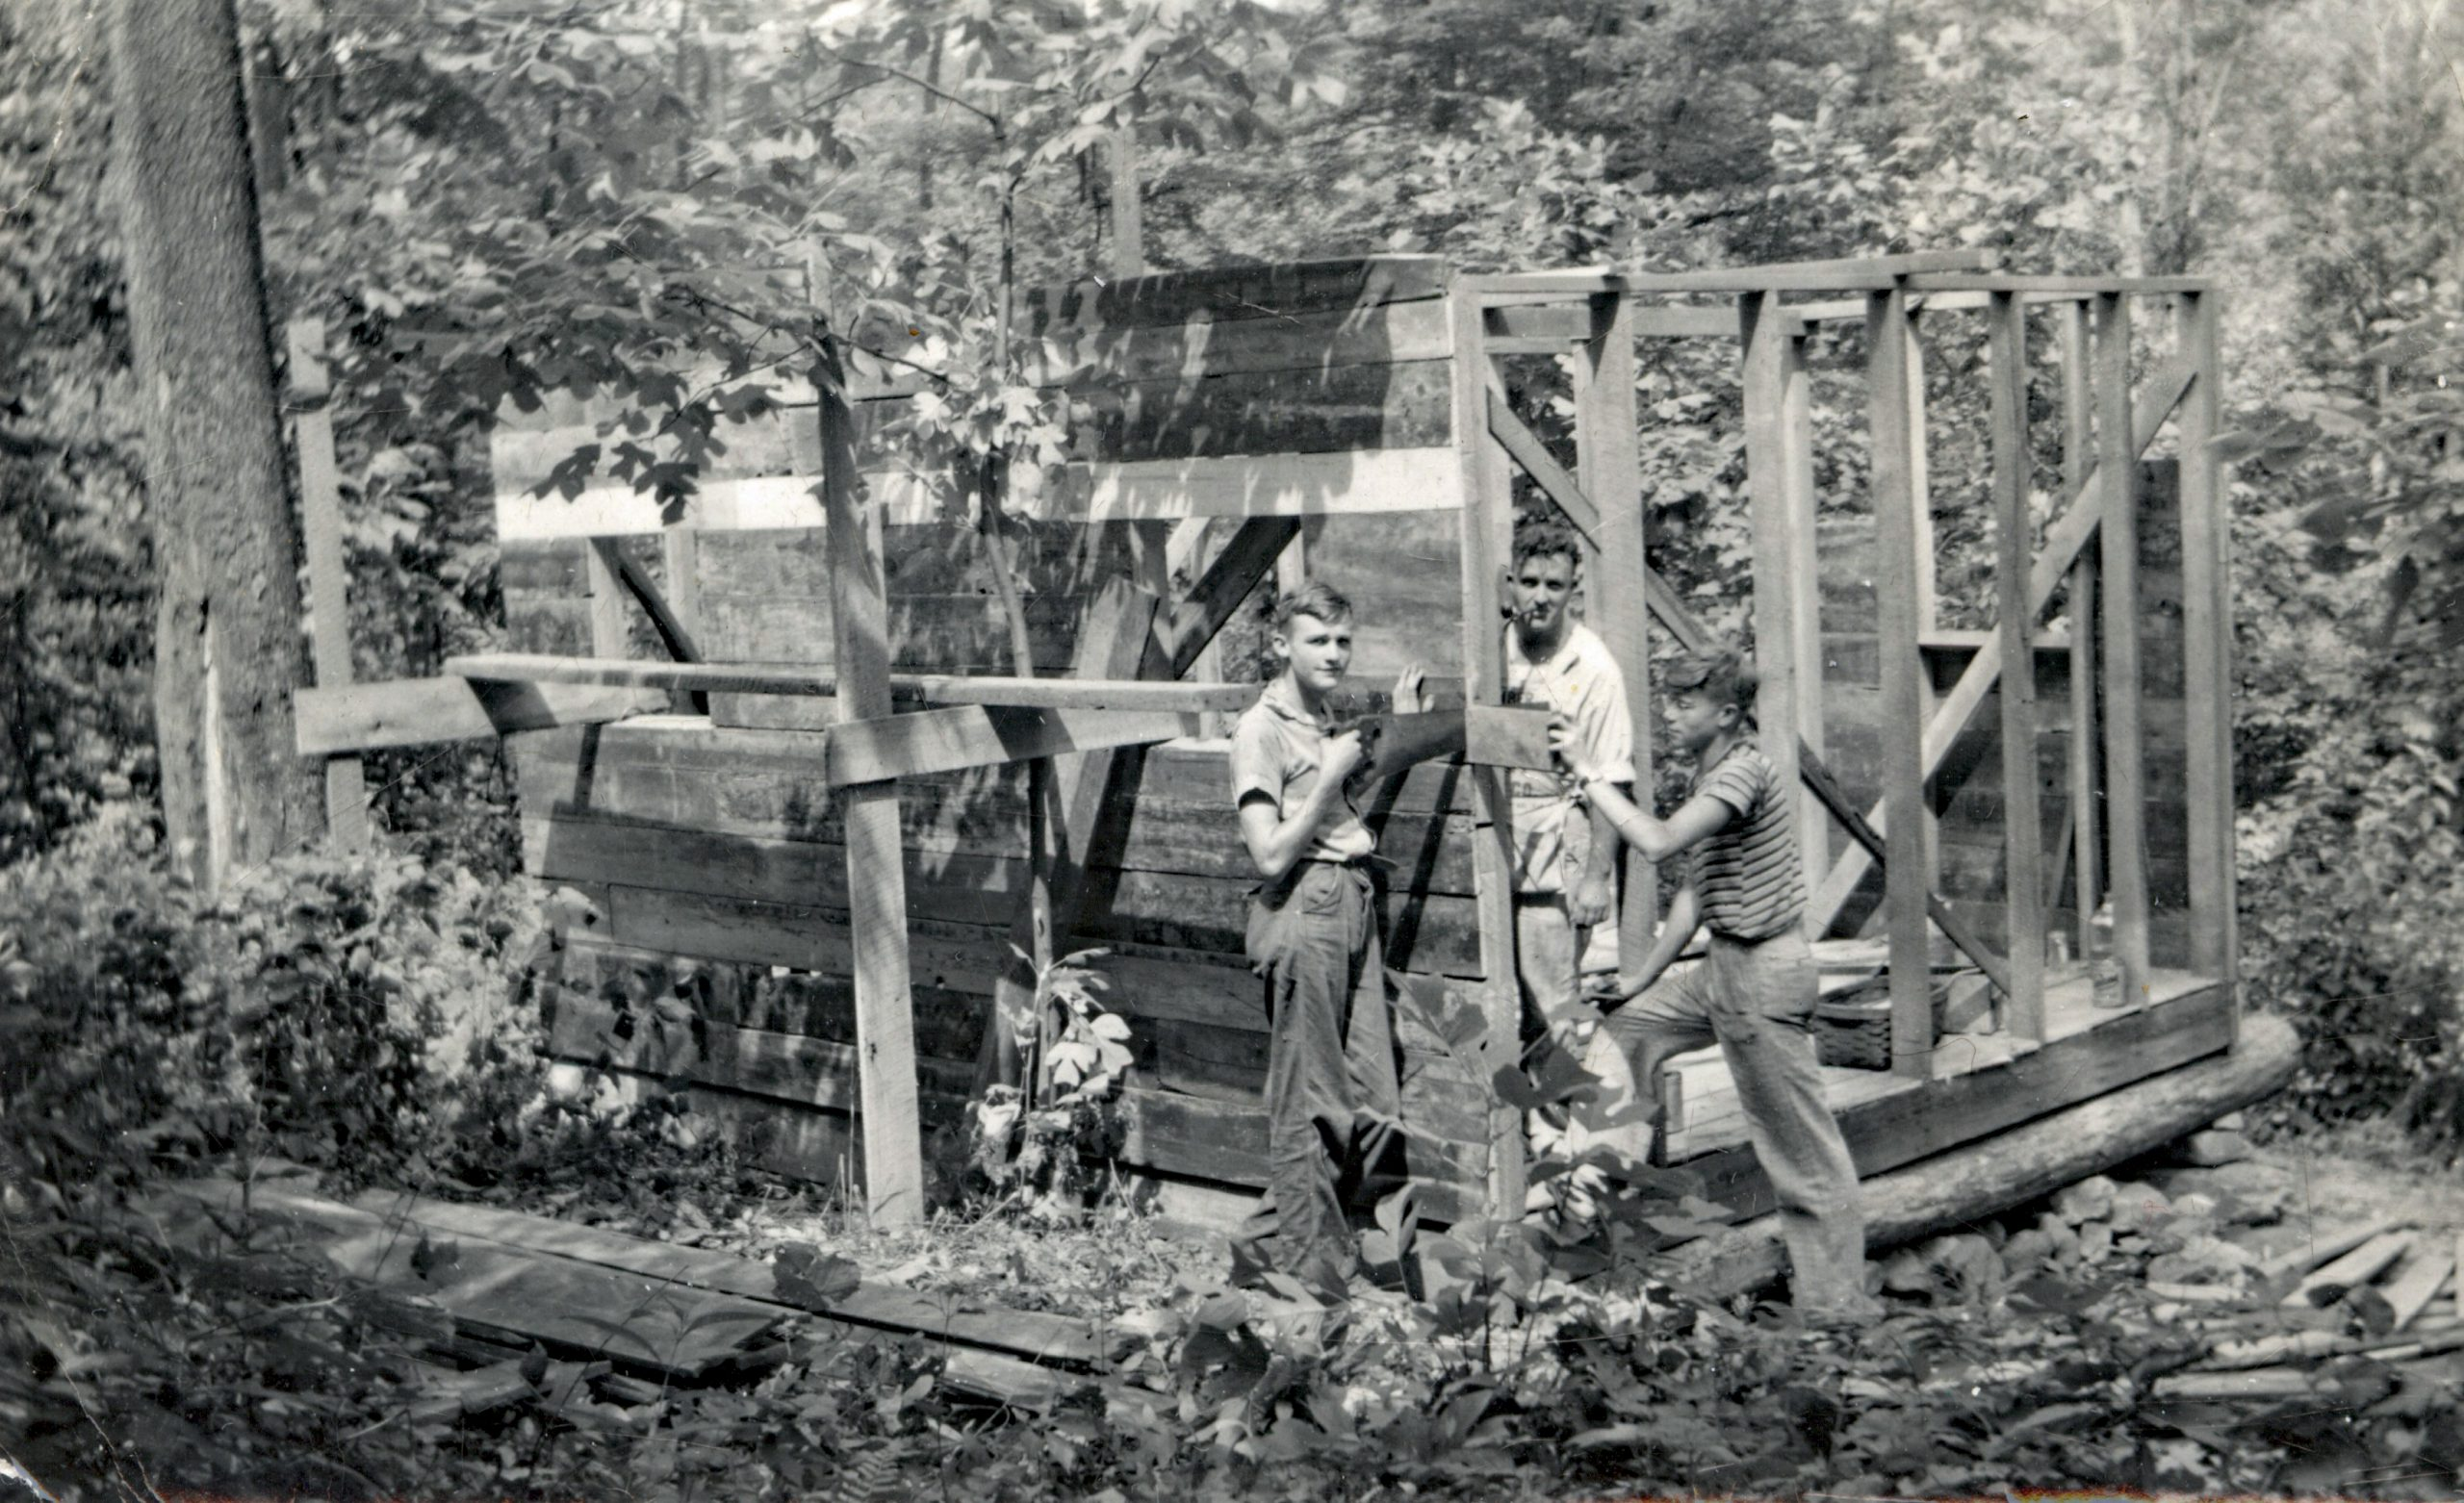 Building Troop 1 Cabin in the late 1930s